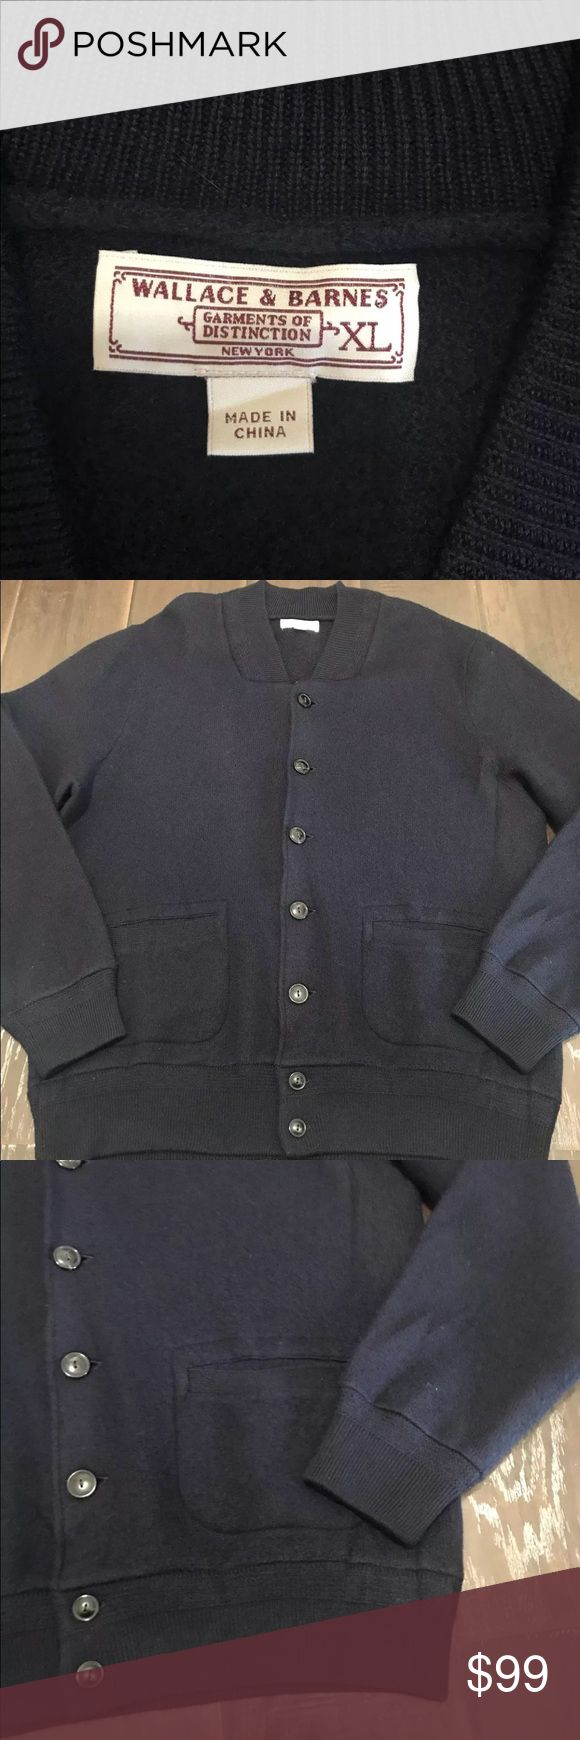 J Crew Wallace and Barnes Wool Bomber Jacket Gently used jacket. Has some scratches on the buttons. 1 Button was glued or repaired in some way. J. Crew Jackets & Coats Bomber & Varsity